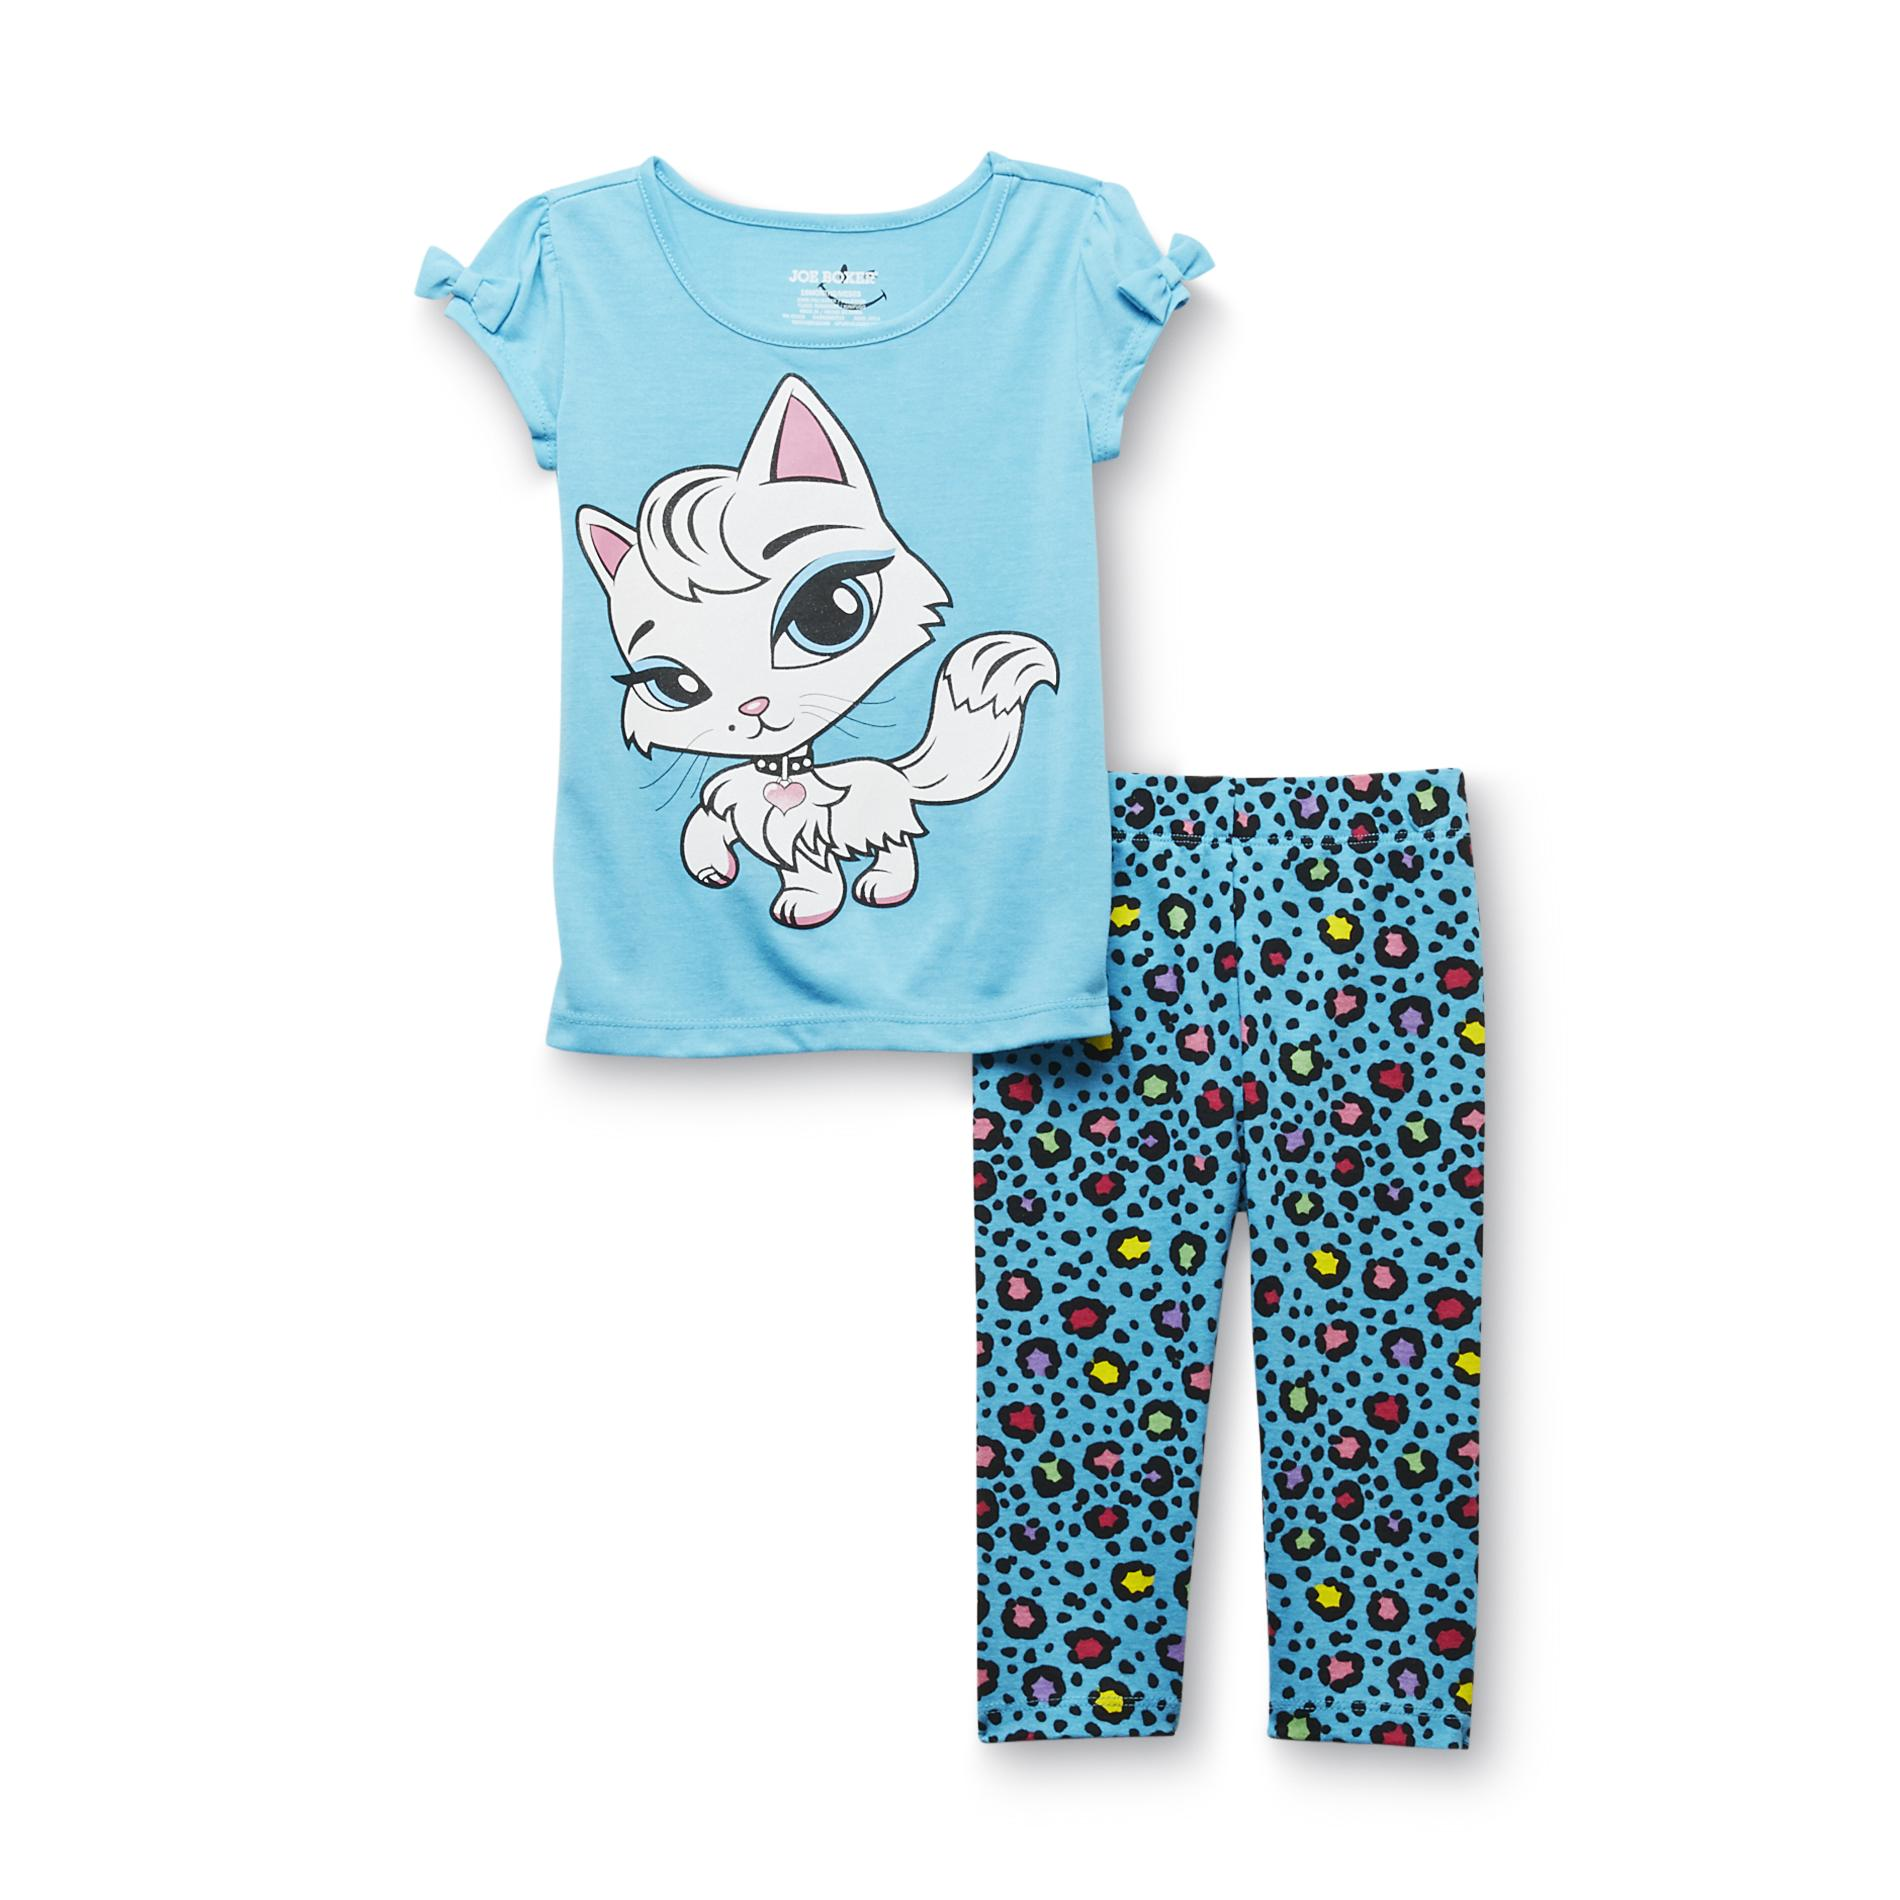 Infant & Toddler Girl's Pajama Top & Leggings